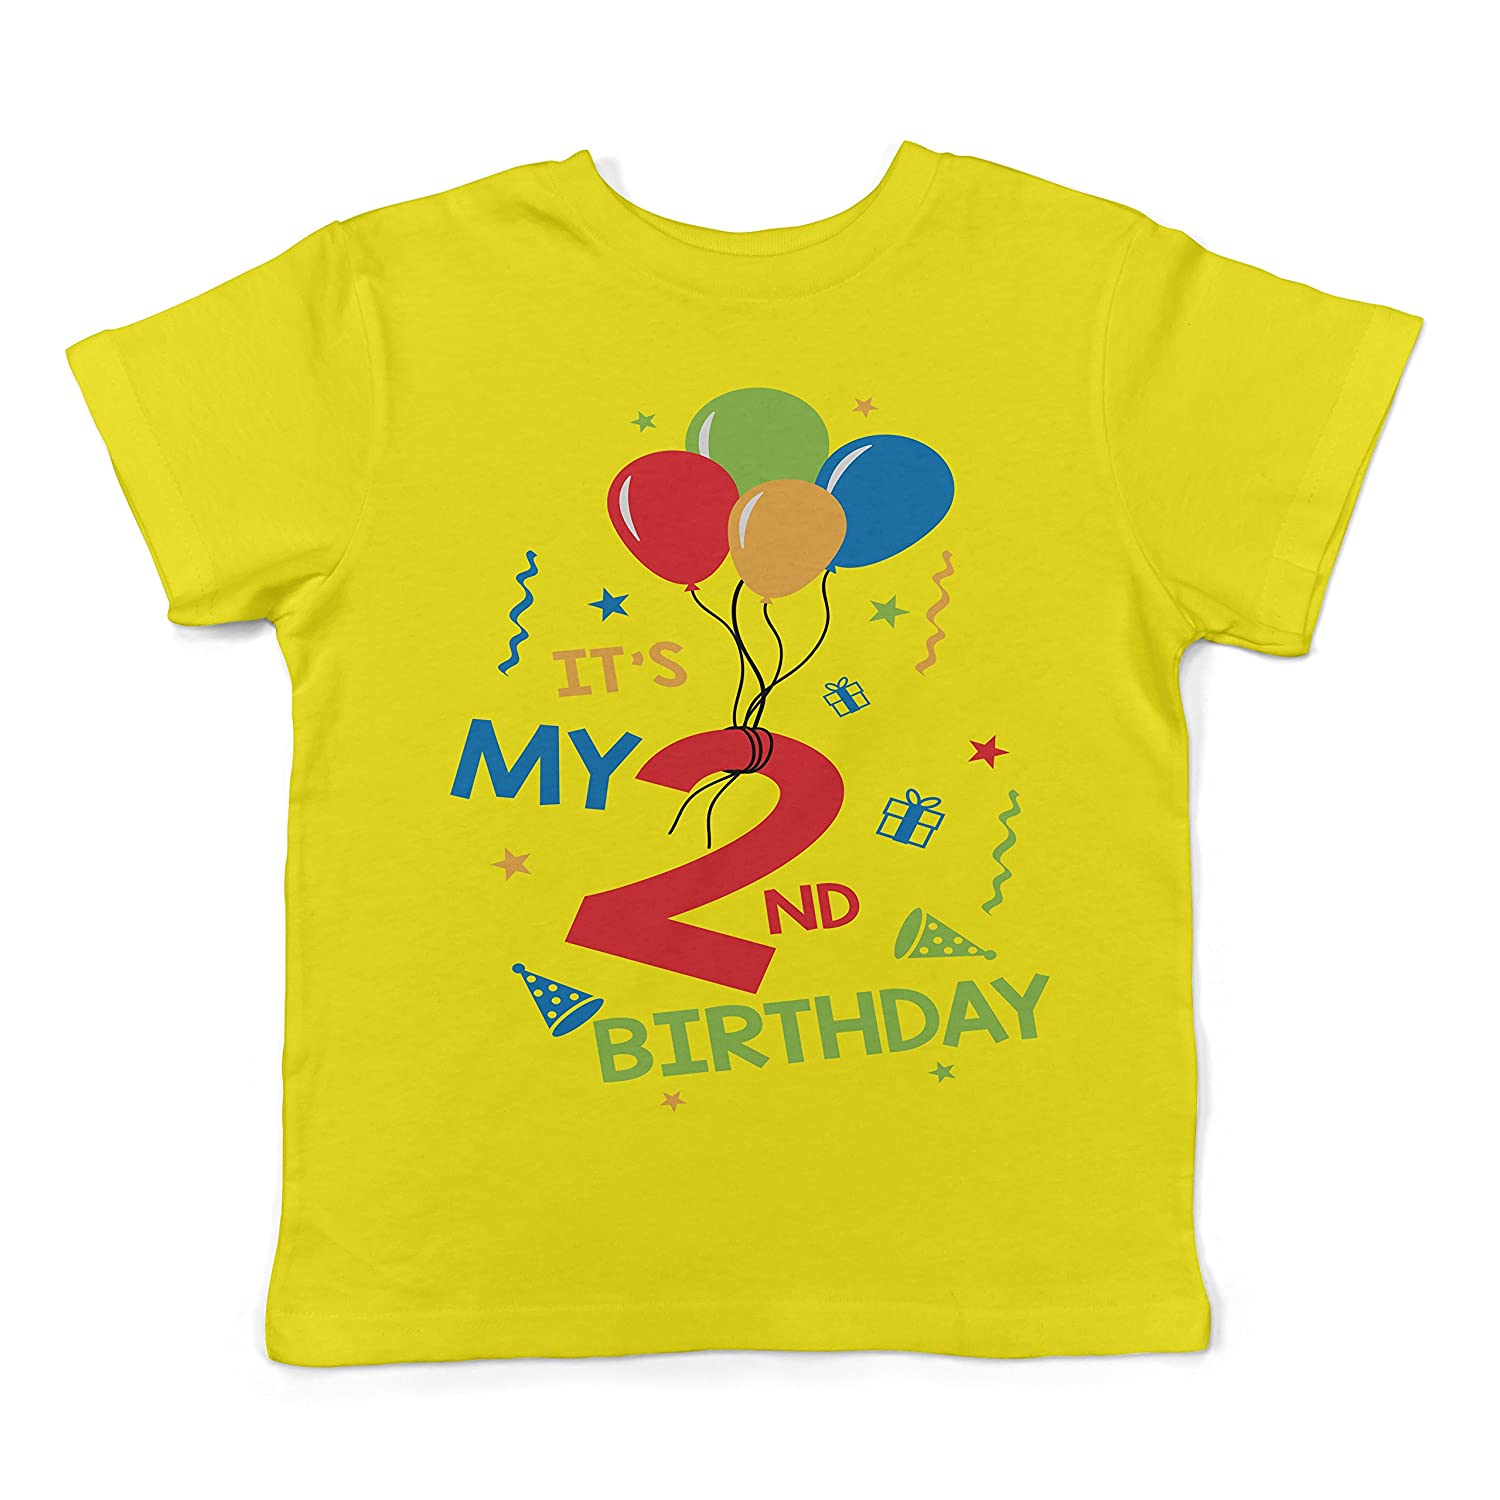 Lil Shirts It's My 2nd Birthday Toddler T-Shirt Yellow)